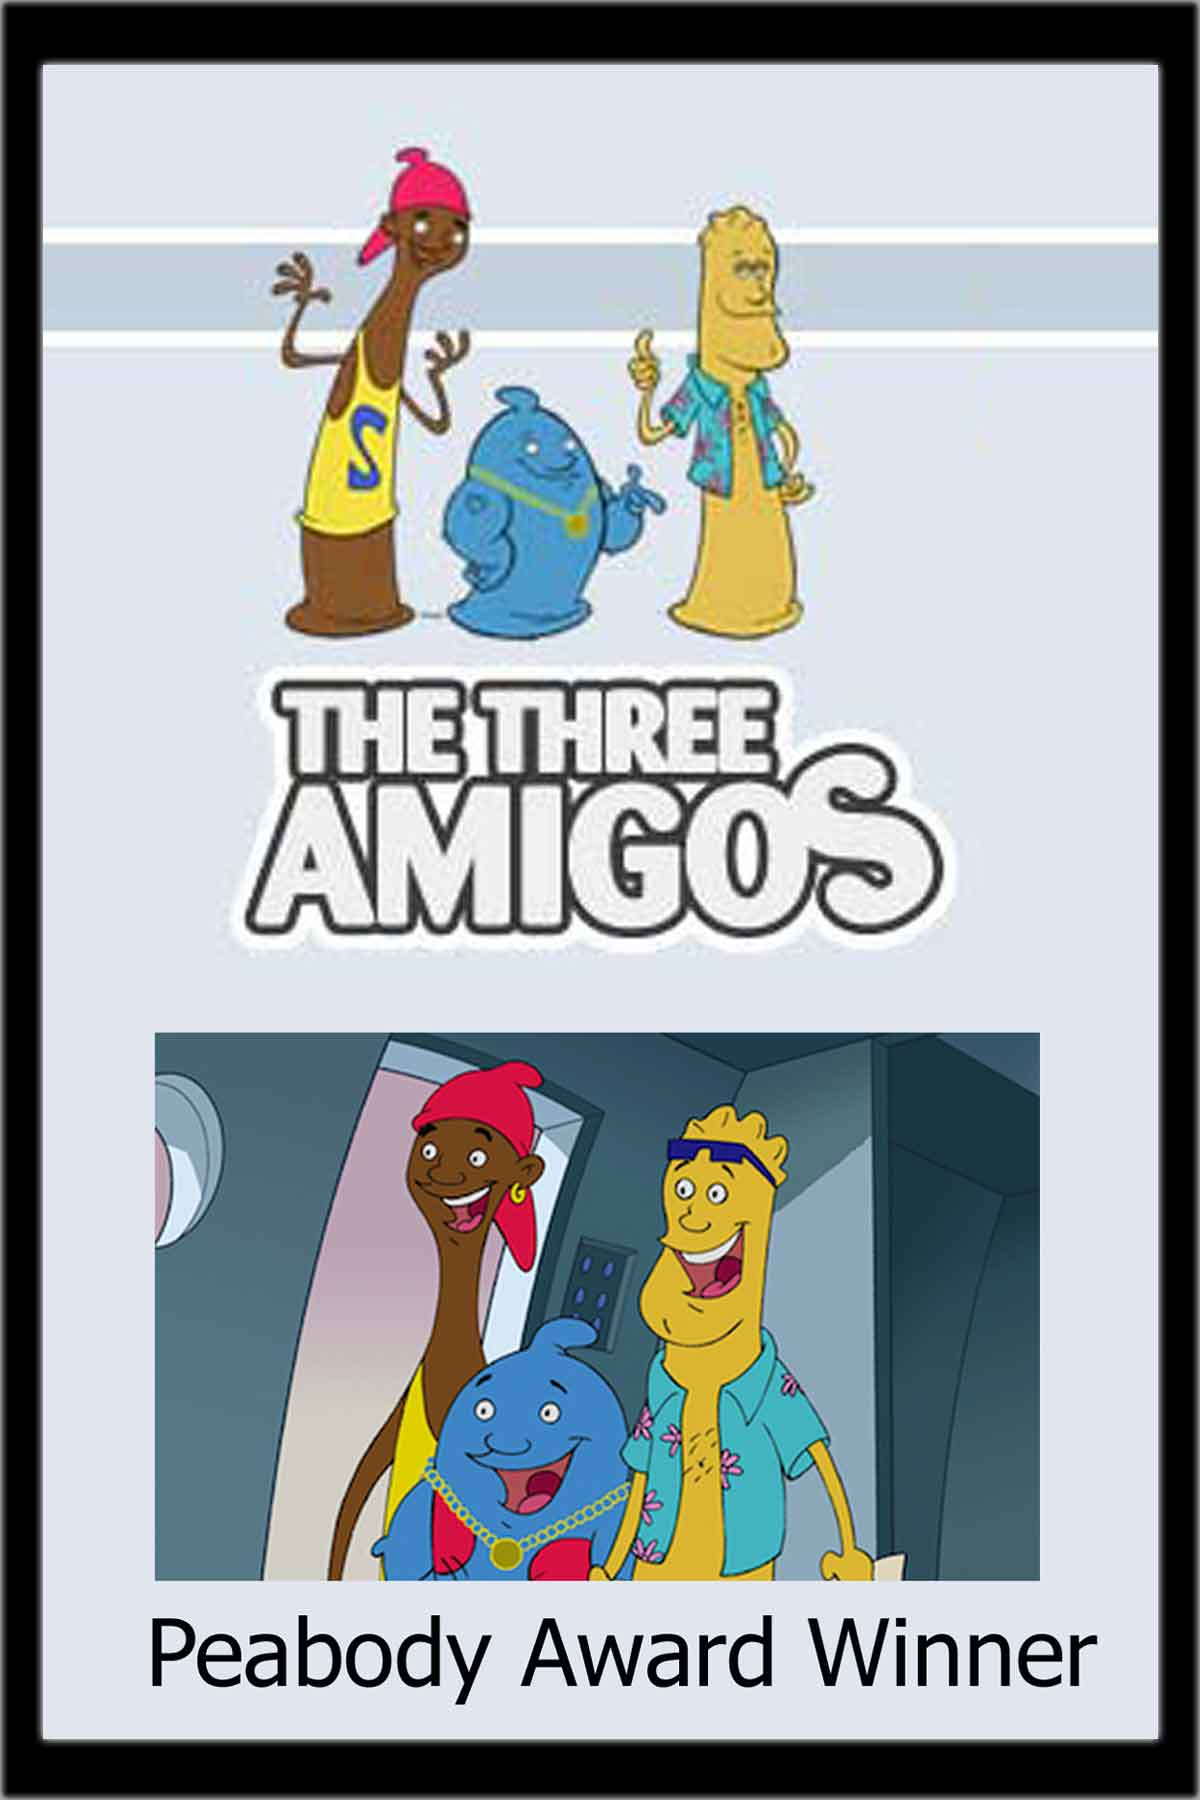 The-Three-Amigos